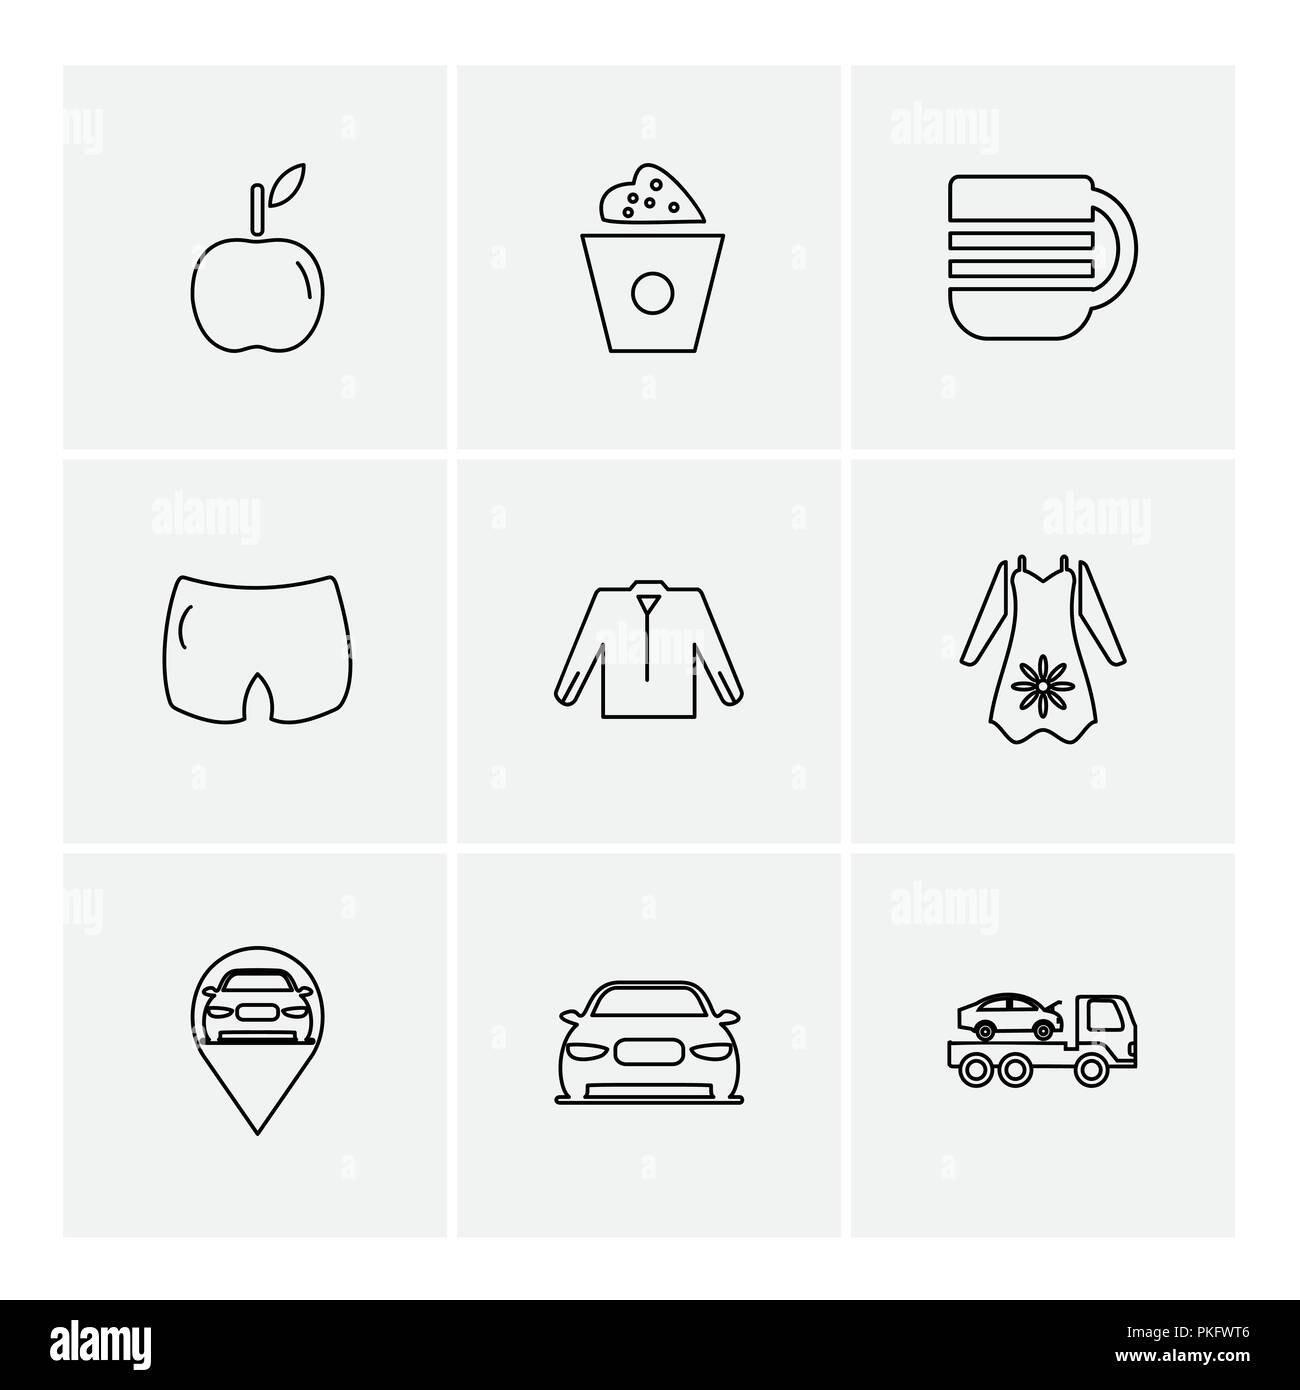 garments ,cloths , wear , dress , pants , jeans , boxer , shirts , tshirts,  top , skirts ,tags , discount  ,icon, vector, design,  flat,  collection, - Stock Image